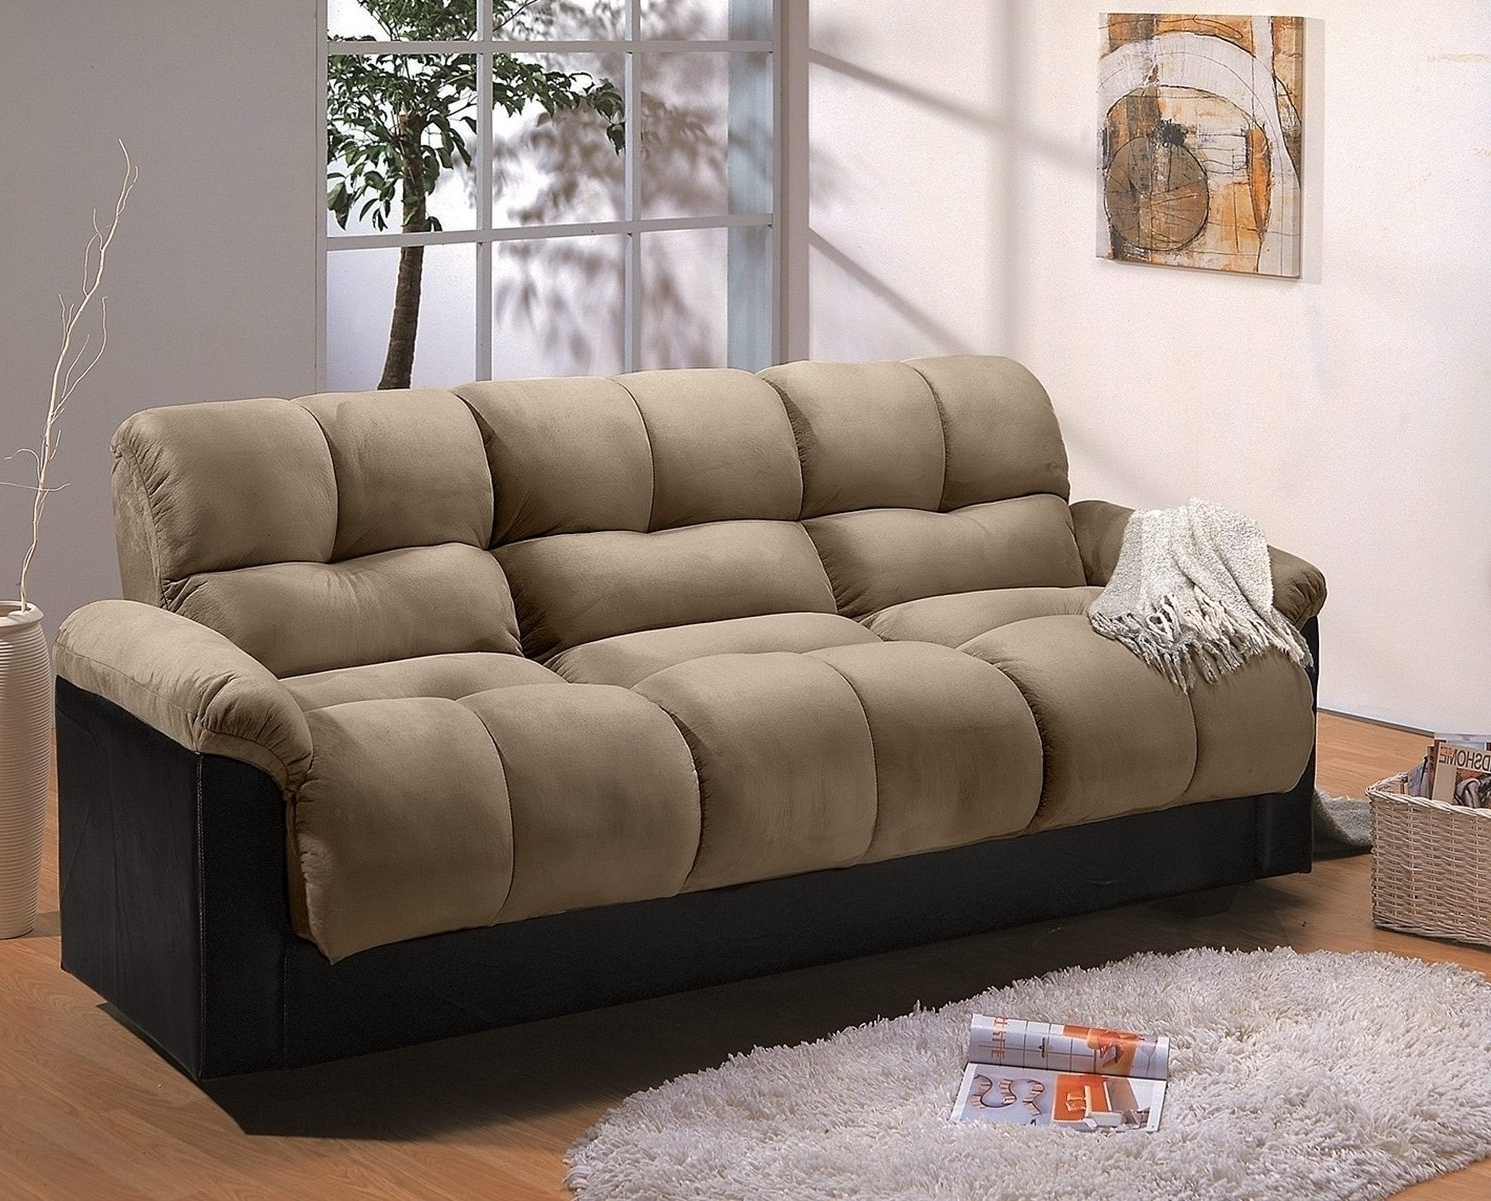 Current Grand Furniture Sectional Sofas Intended For Lazy Boy Sectional Sofa Grand Home Furnishings — The Home Redesign (View 6 of 20)